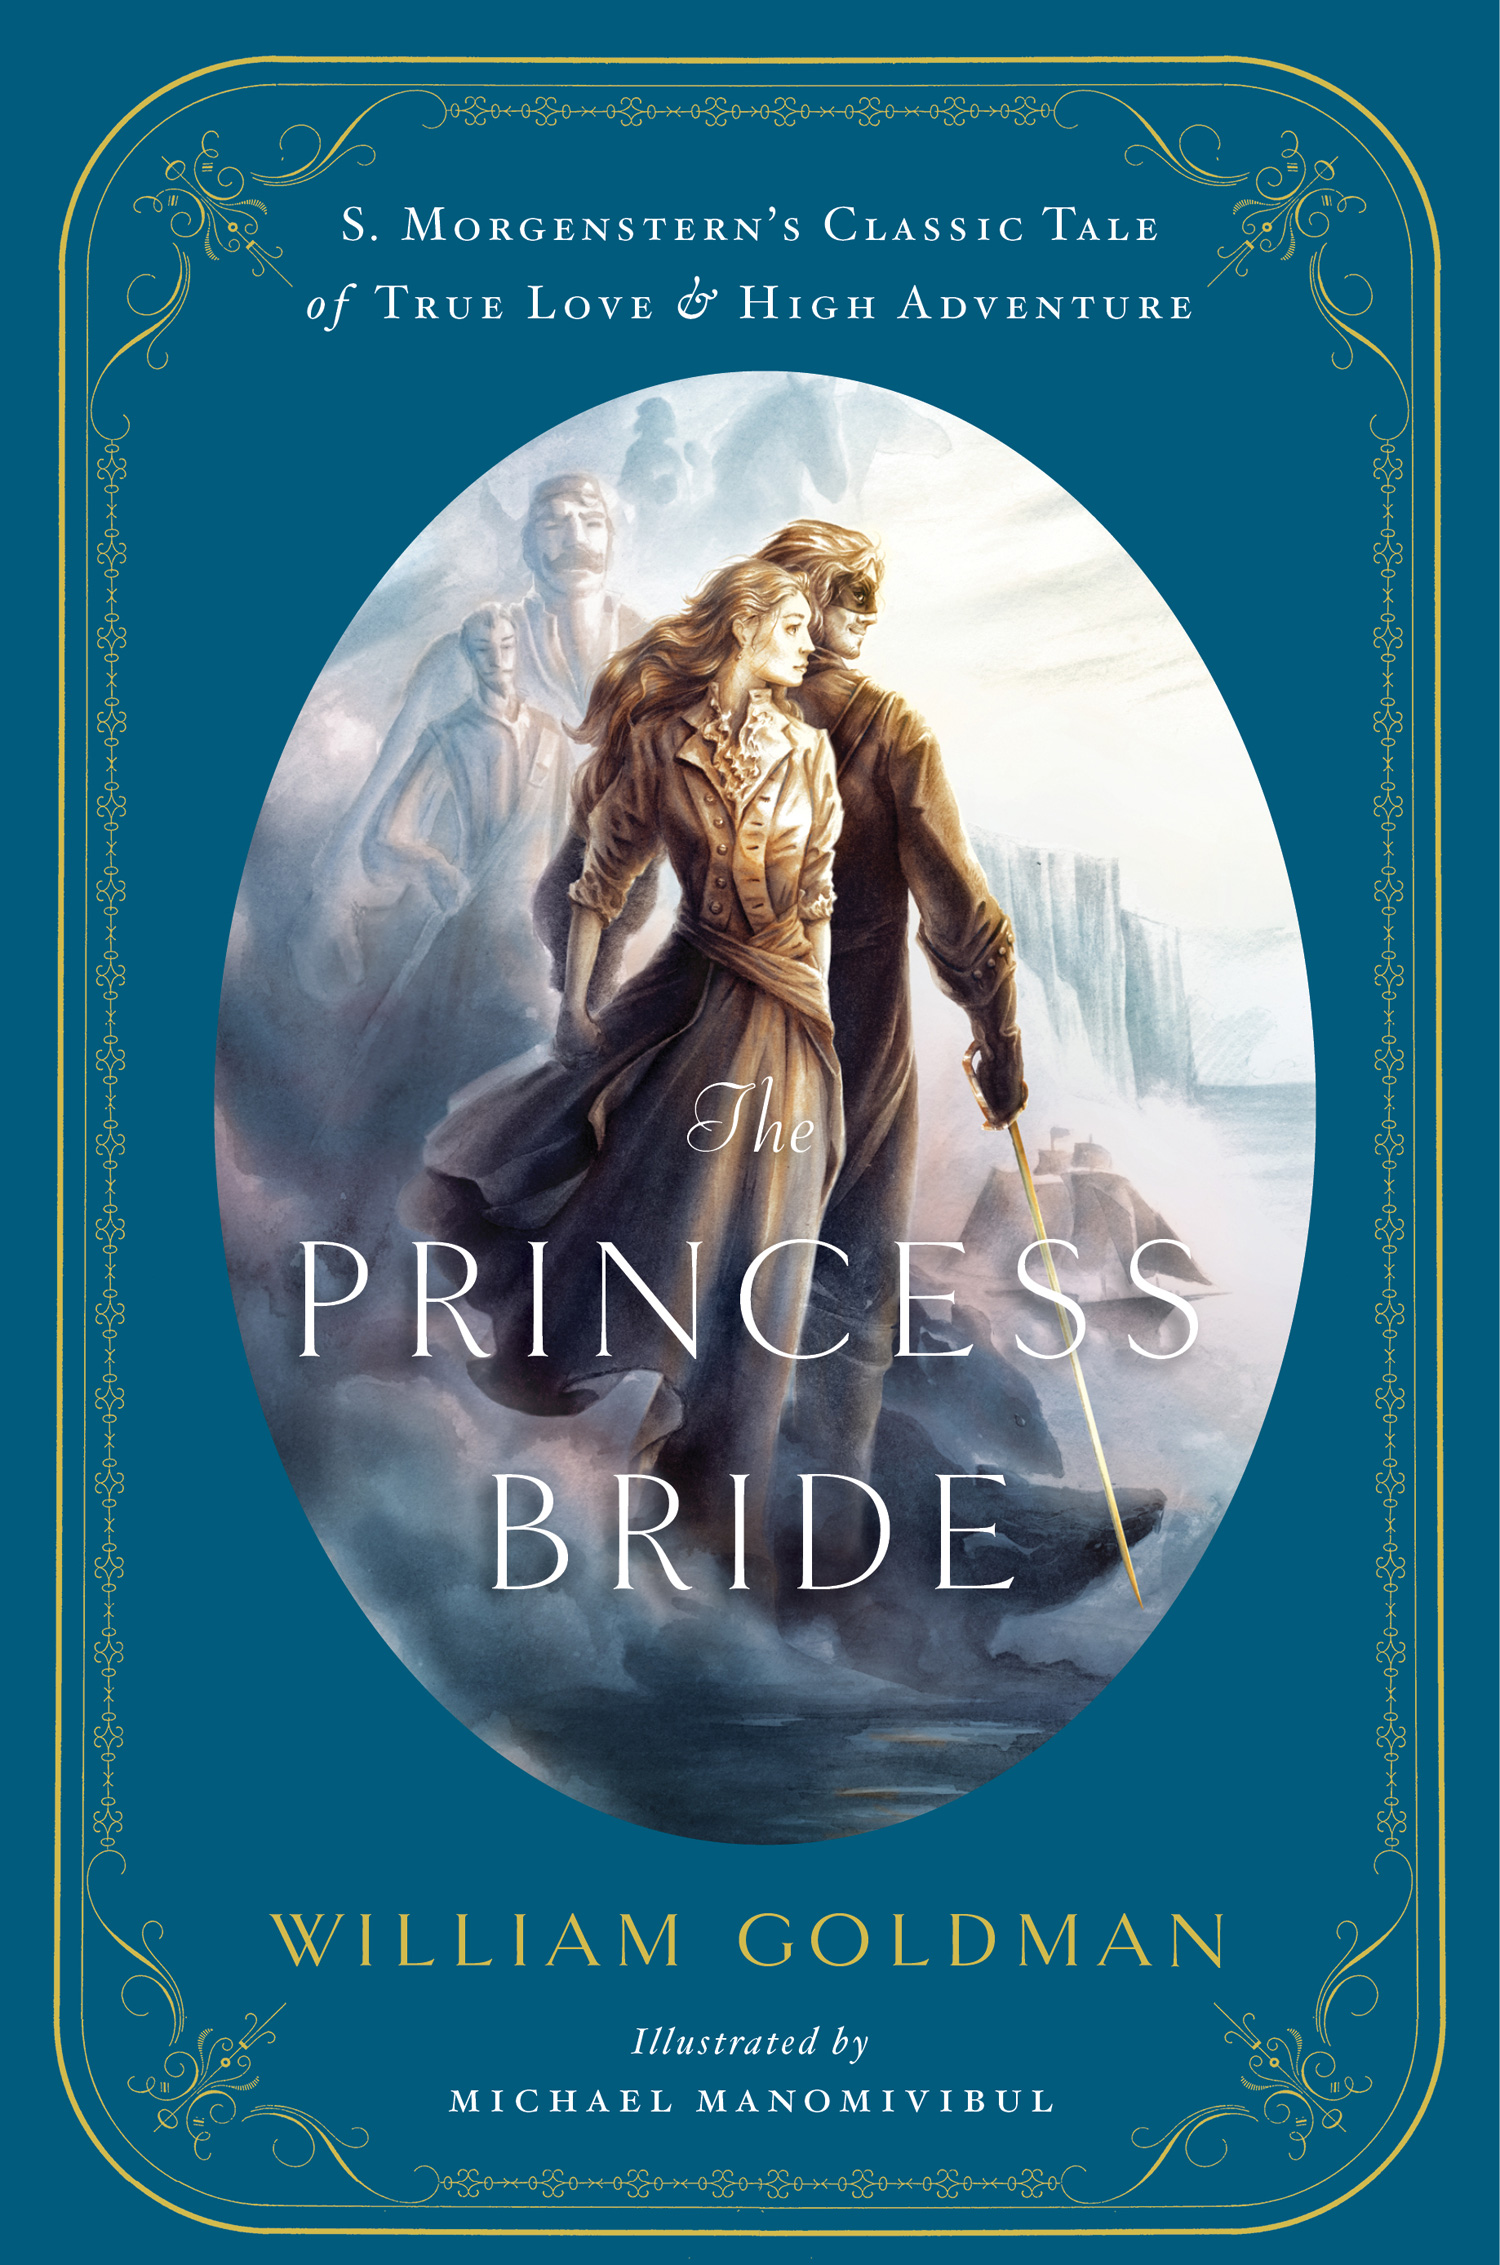 The Princess Bride-9780544173767